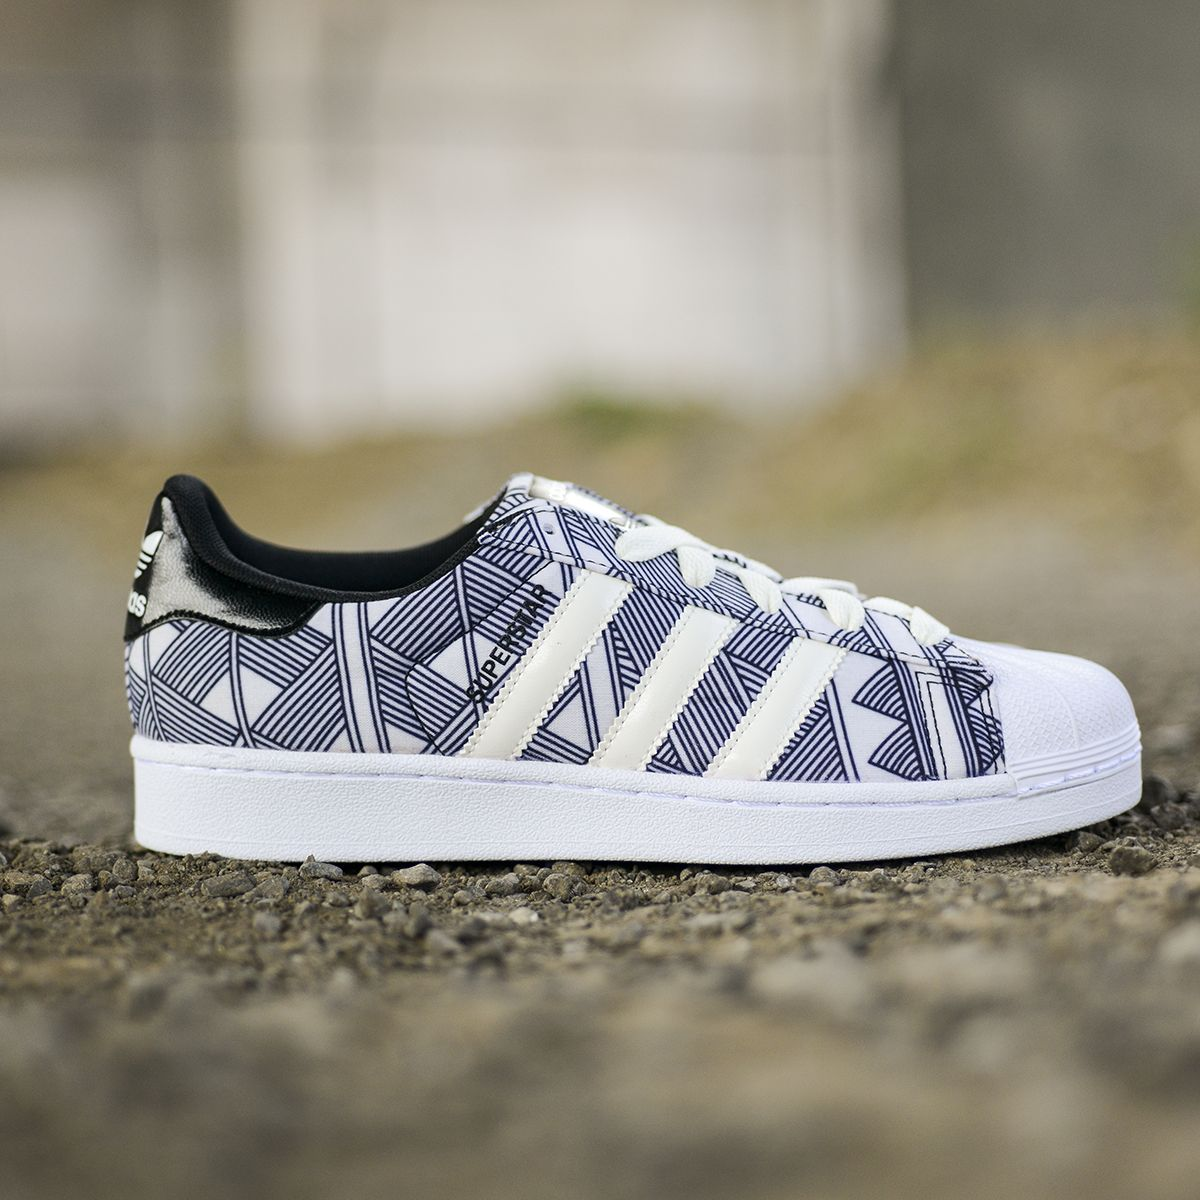 New Geometric Print Adidas Superstar Sneakers Who S Excited Sneaker Head Sneakers Fashion Sneakers